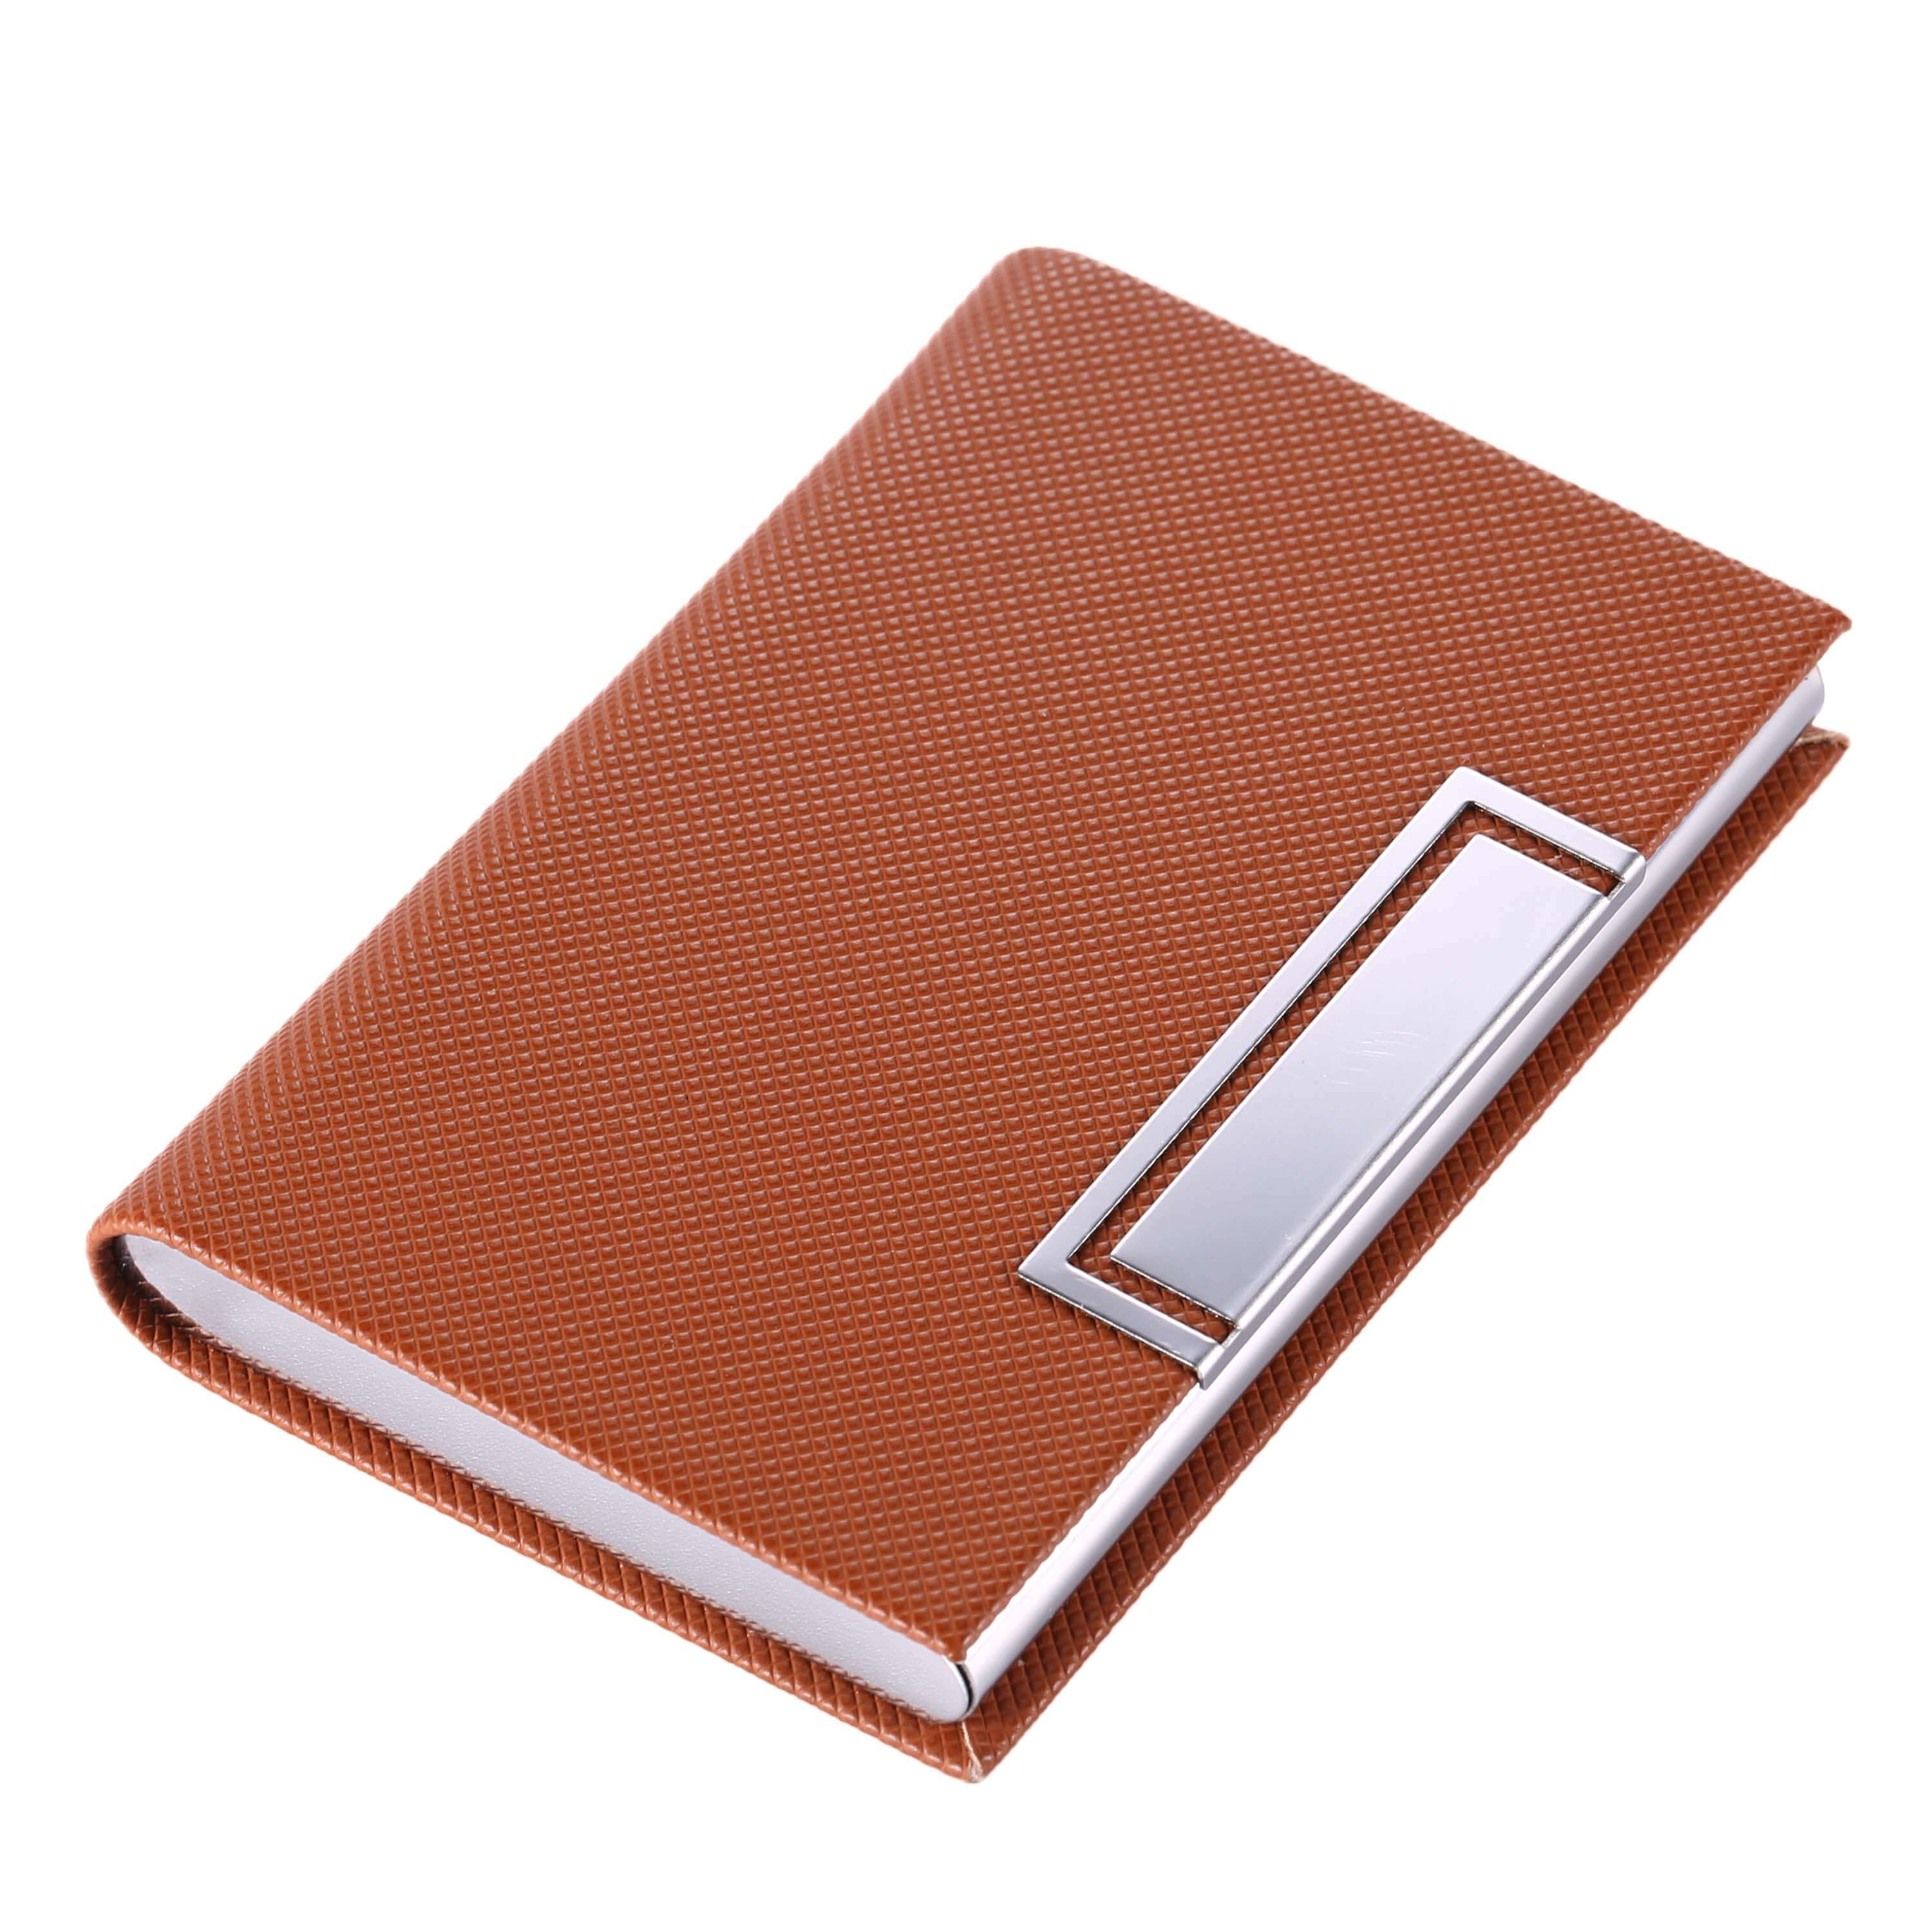 [US Direct] UBaymax Slim Professional Business Card Holder, Stainless Steel and PU Leather Business Card Case (Brown) Brown